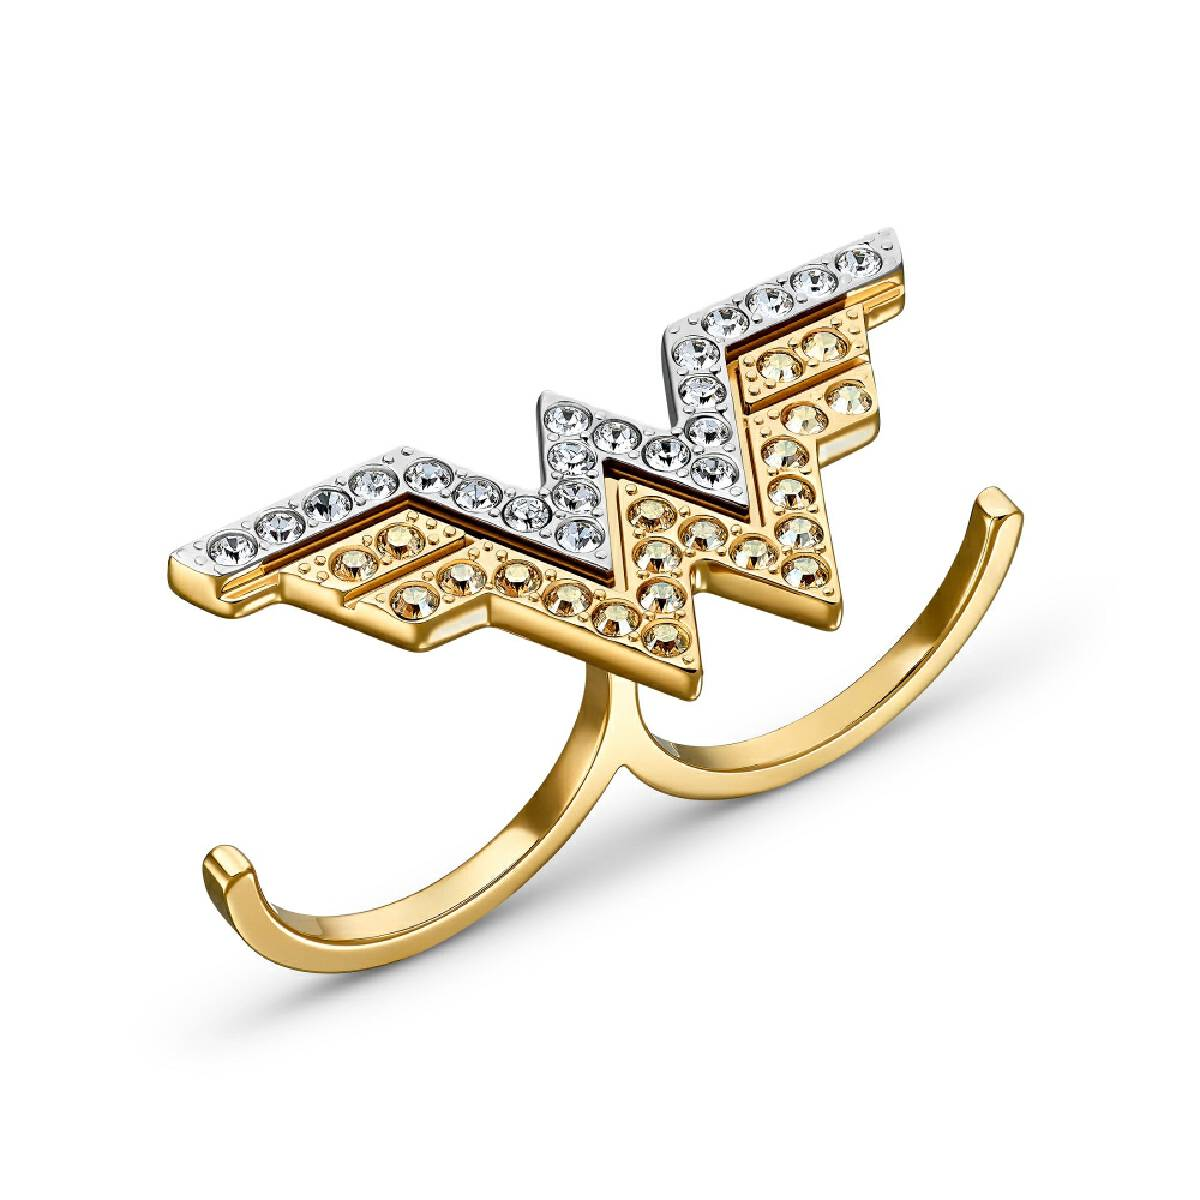 Dial up the sparkle with Swarovski's Wonder Woman collection